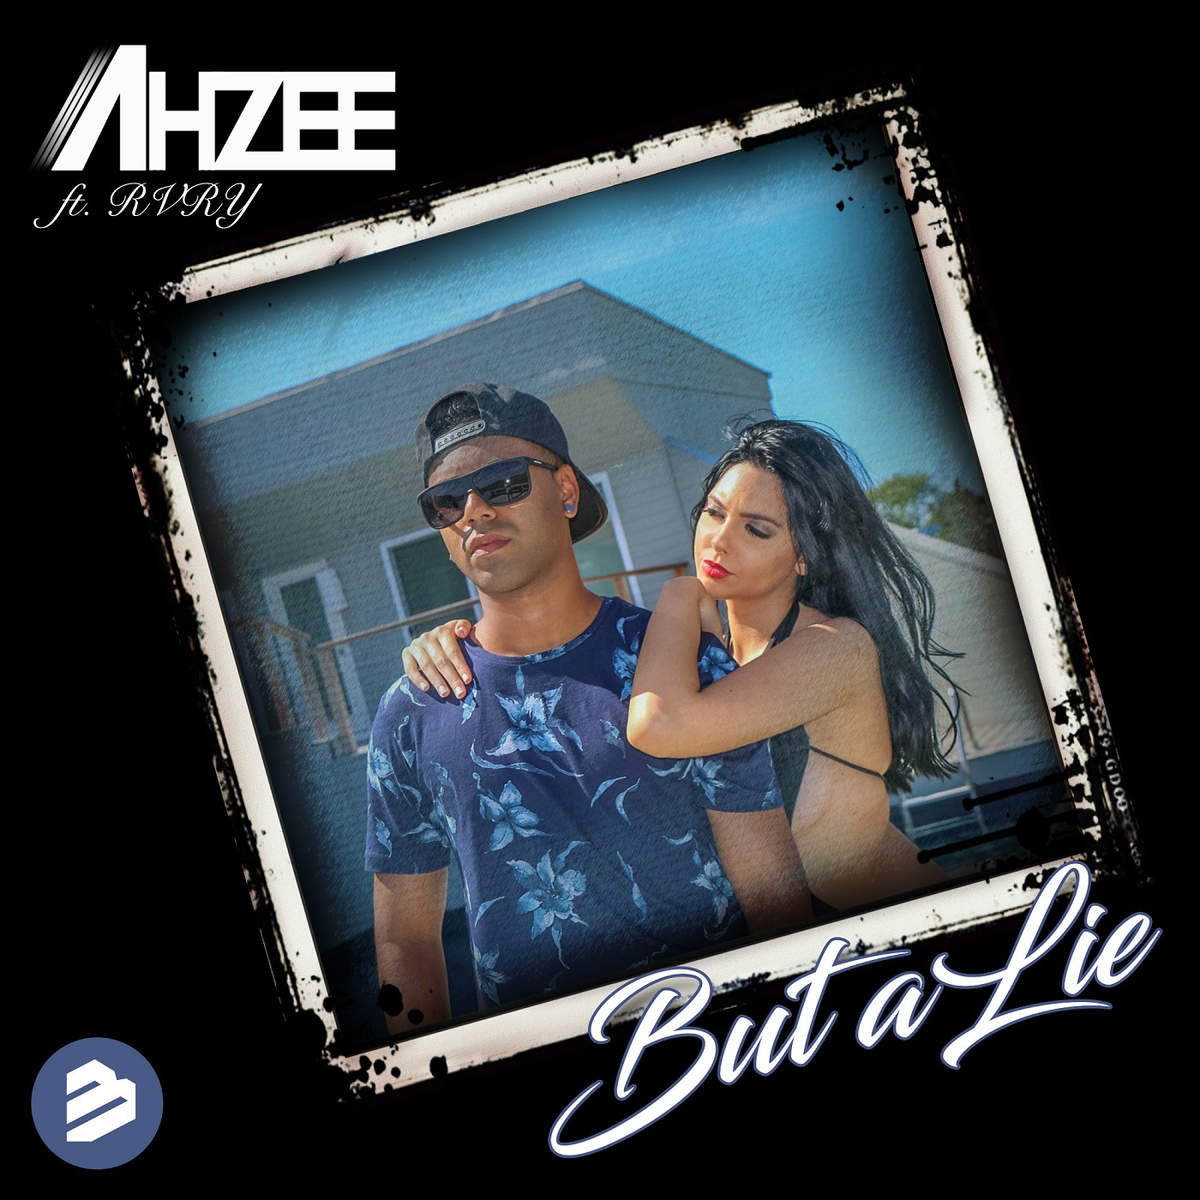 ahzee_feat_rvry-but_a_lie_s